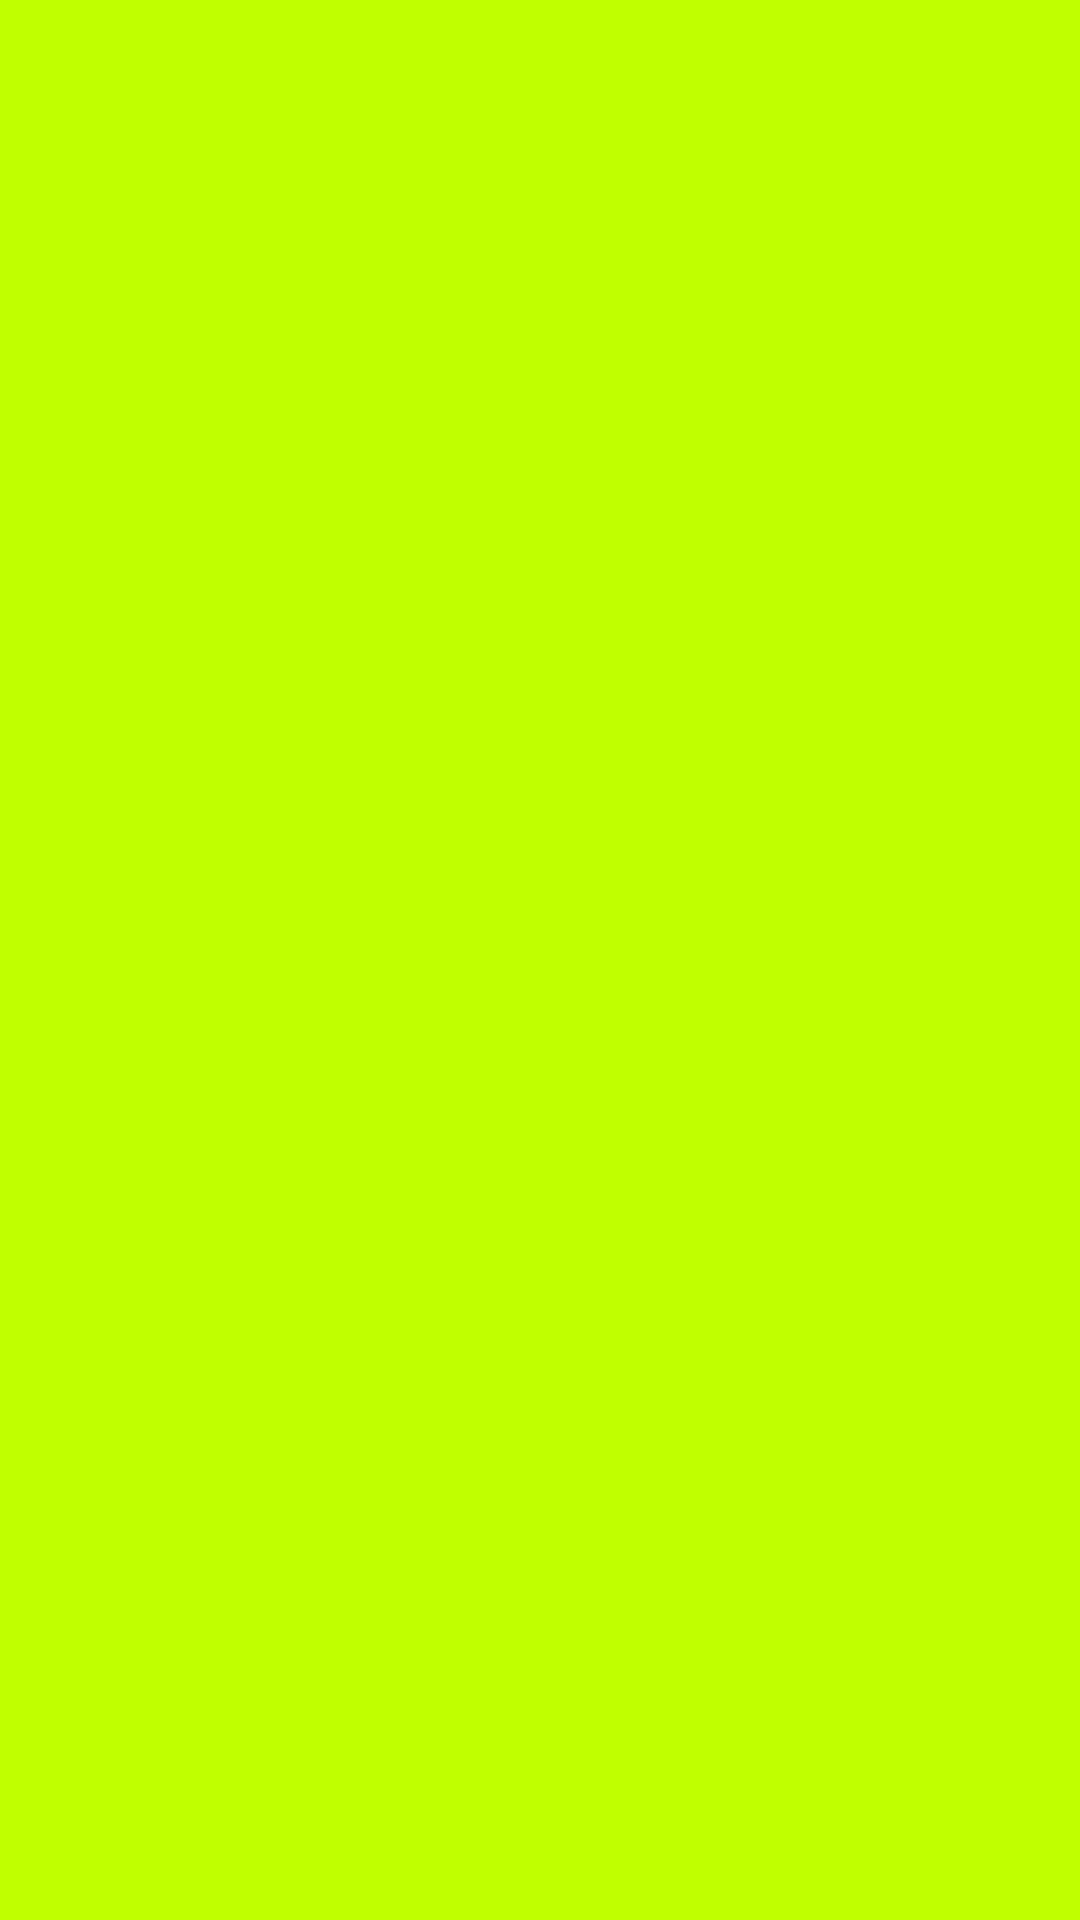 1080x1920 Bitter Lime Solid Color Background